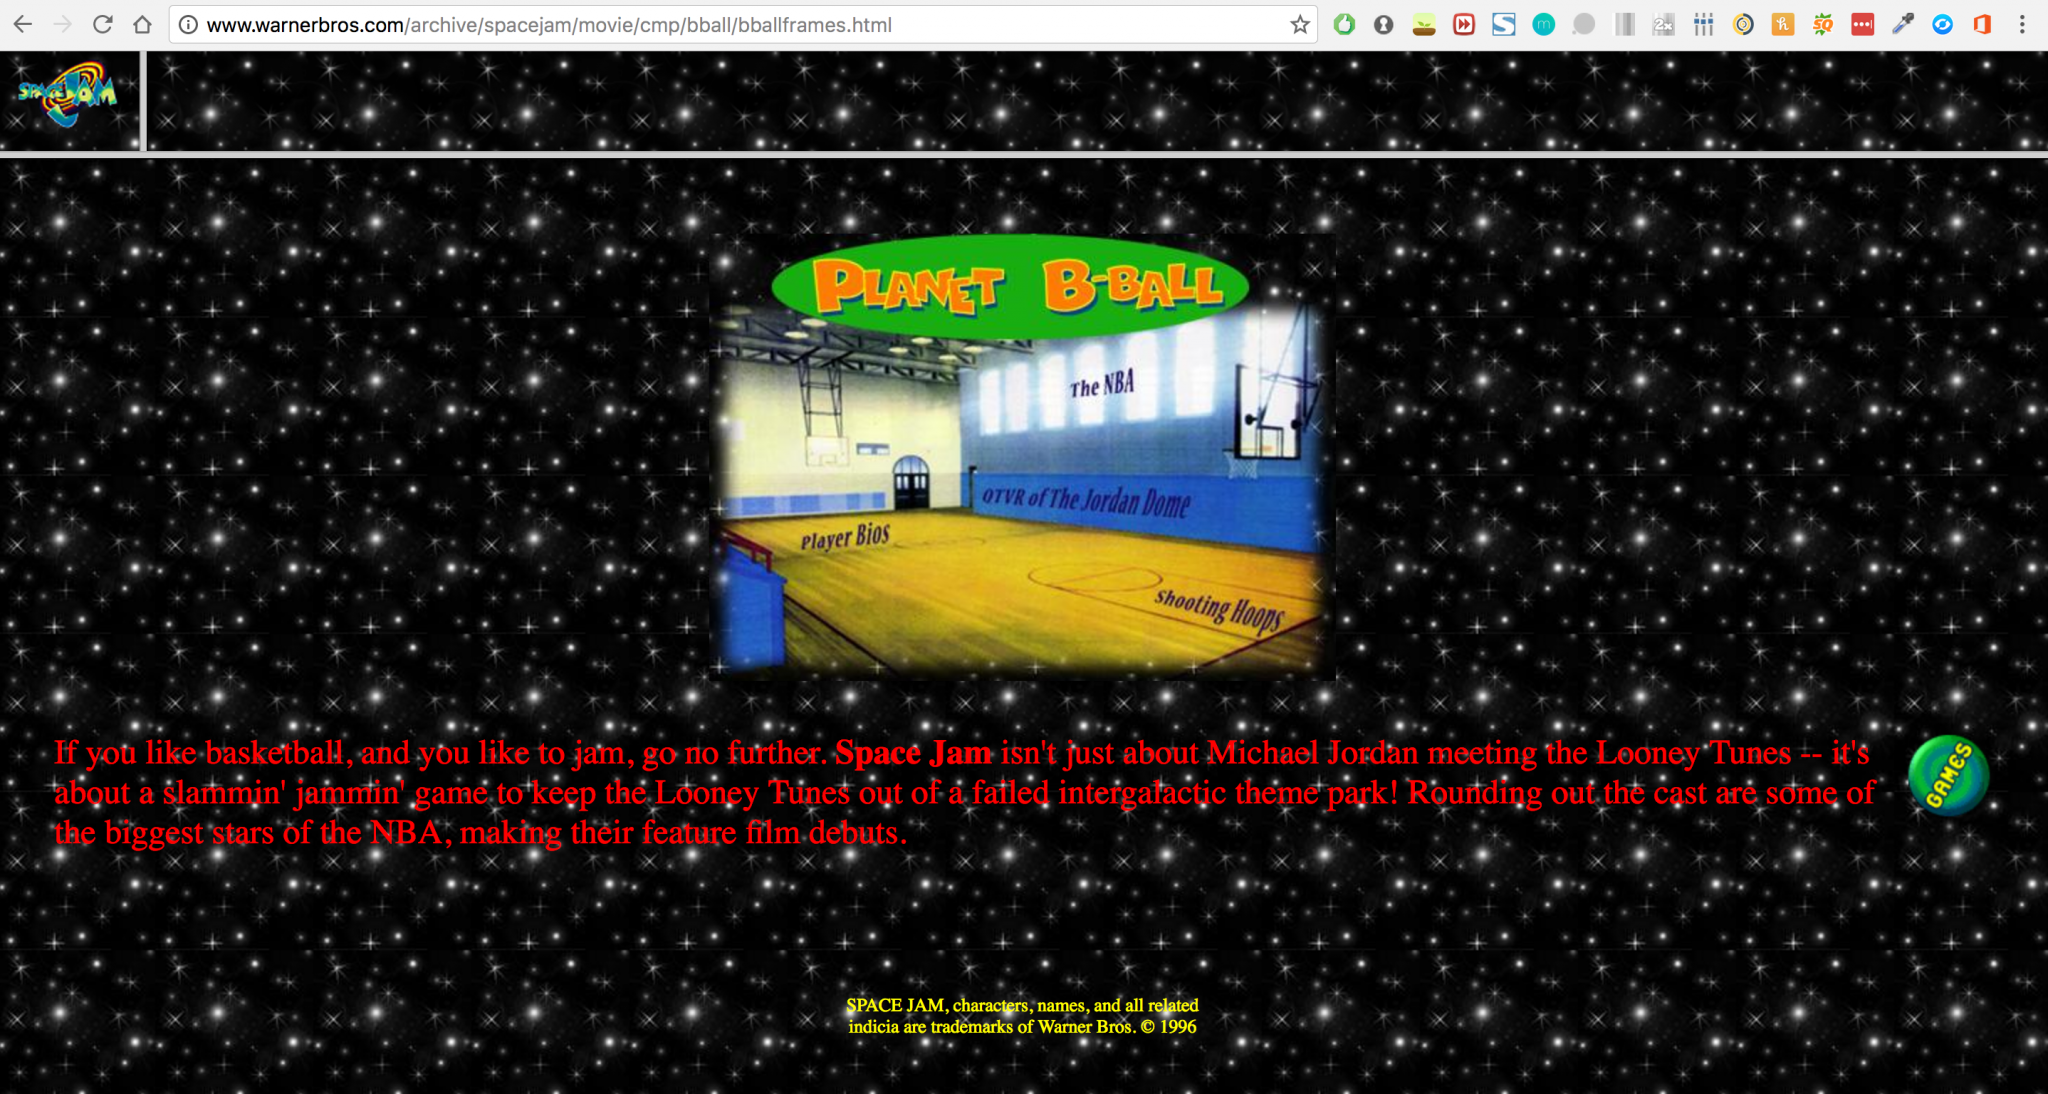 Retro Space Jam Website